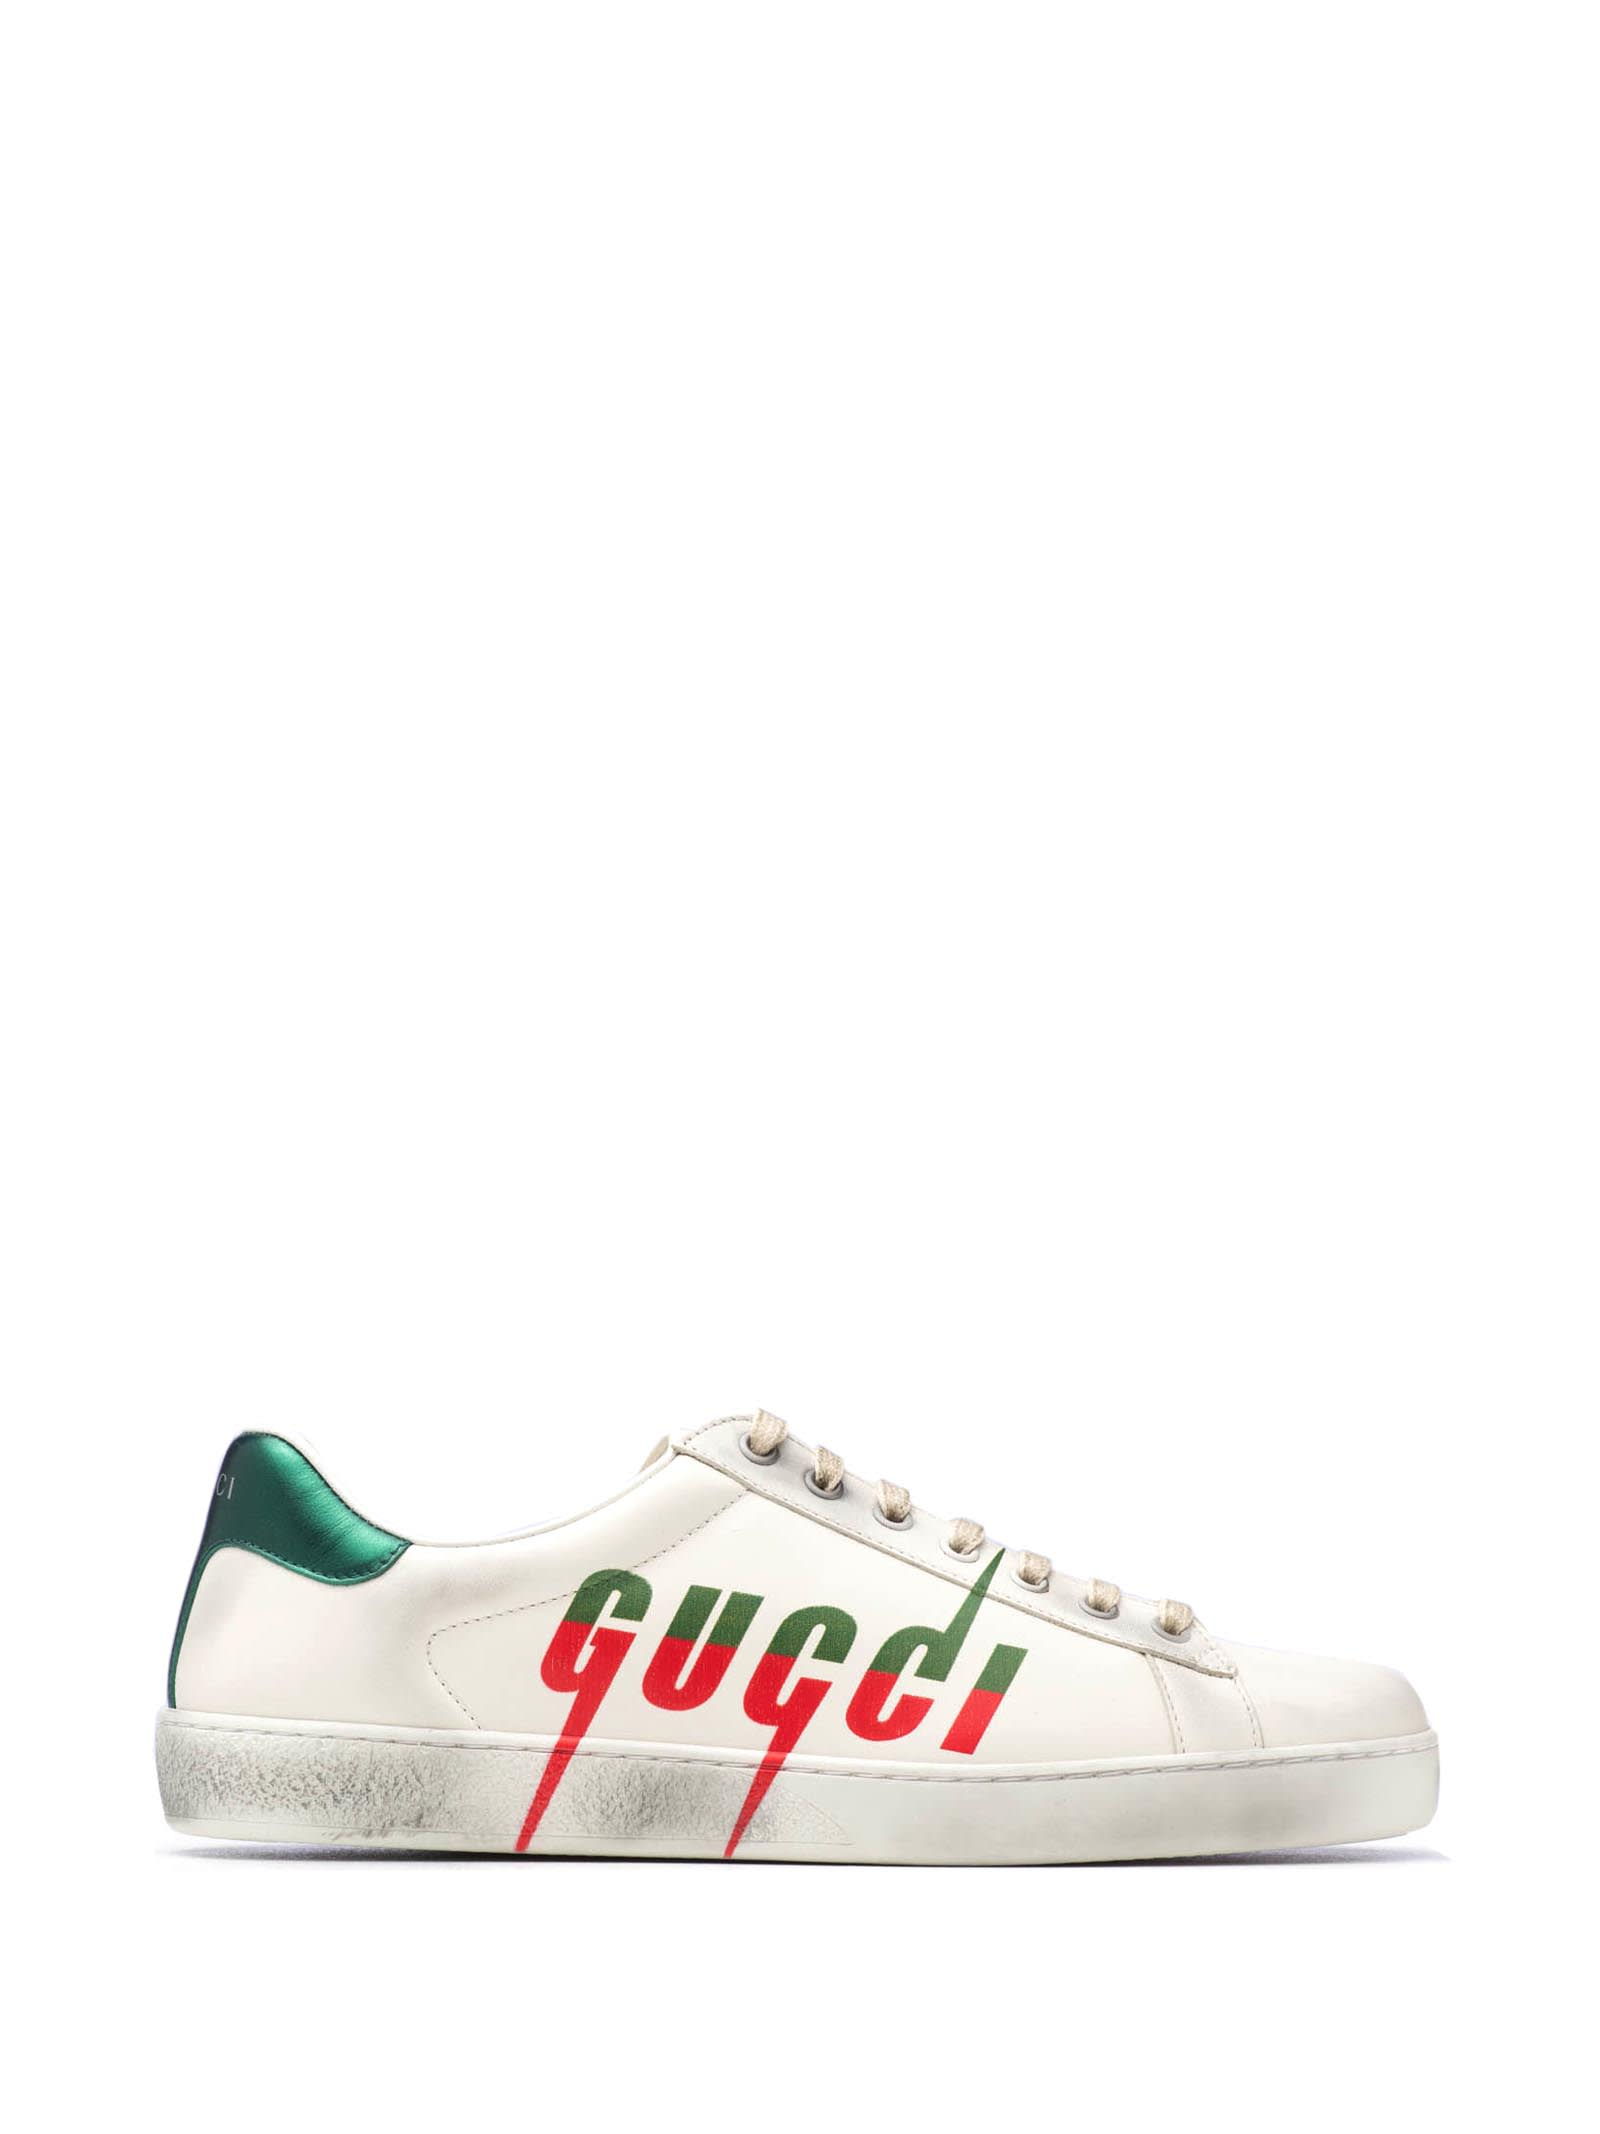 a70c0c60 Gucci Gucci Ace Blade Sneakers